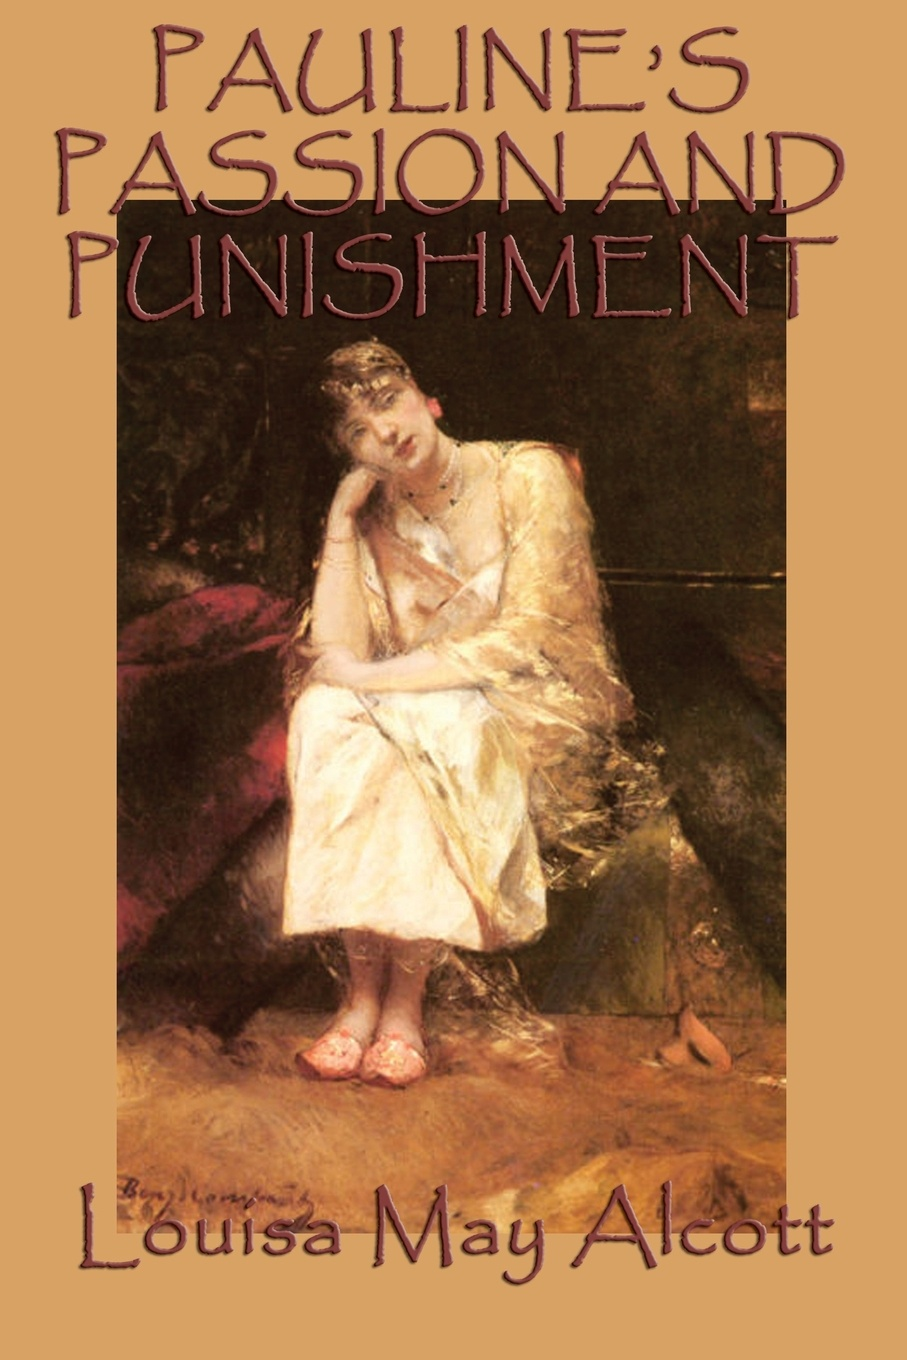 Louisa May Alcott Pauline's Passion and Punishment louisa may alcott little women letters from the house of alcott